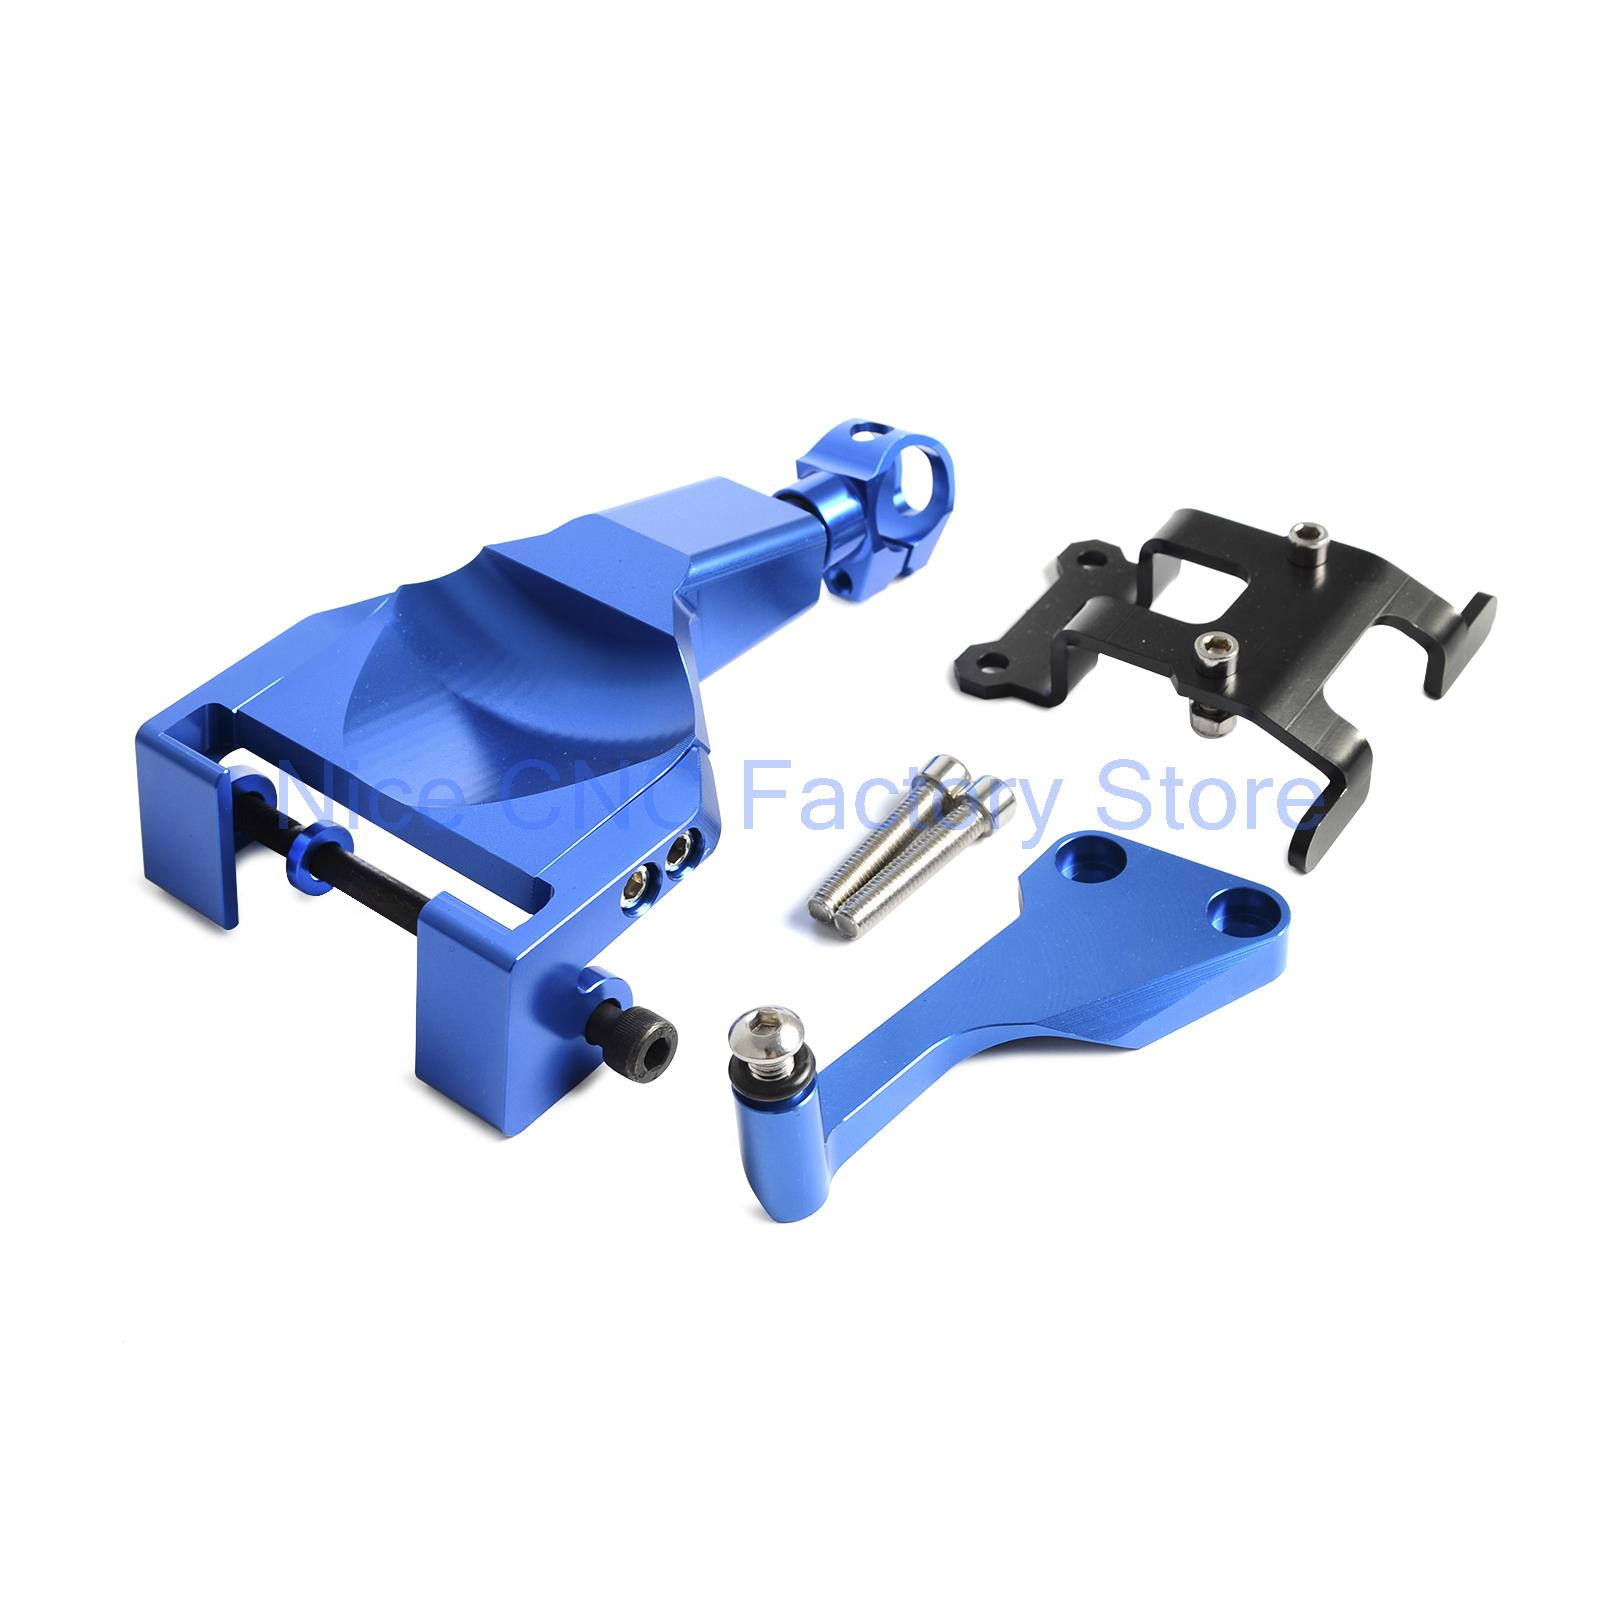 Blue Motorcycle Stablizer Damper Mounting Bracket Kit For Yamaha MT-07 MT07 MOTO CAGE 2014 2015 2016 for yamaha mt 03 2015 2016 mt 25 2015 2016 mobile phone navigation bracket